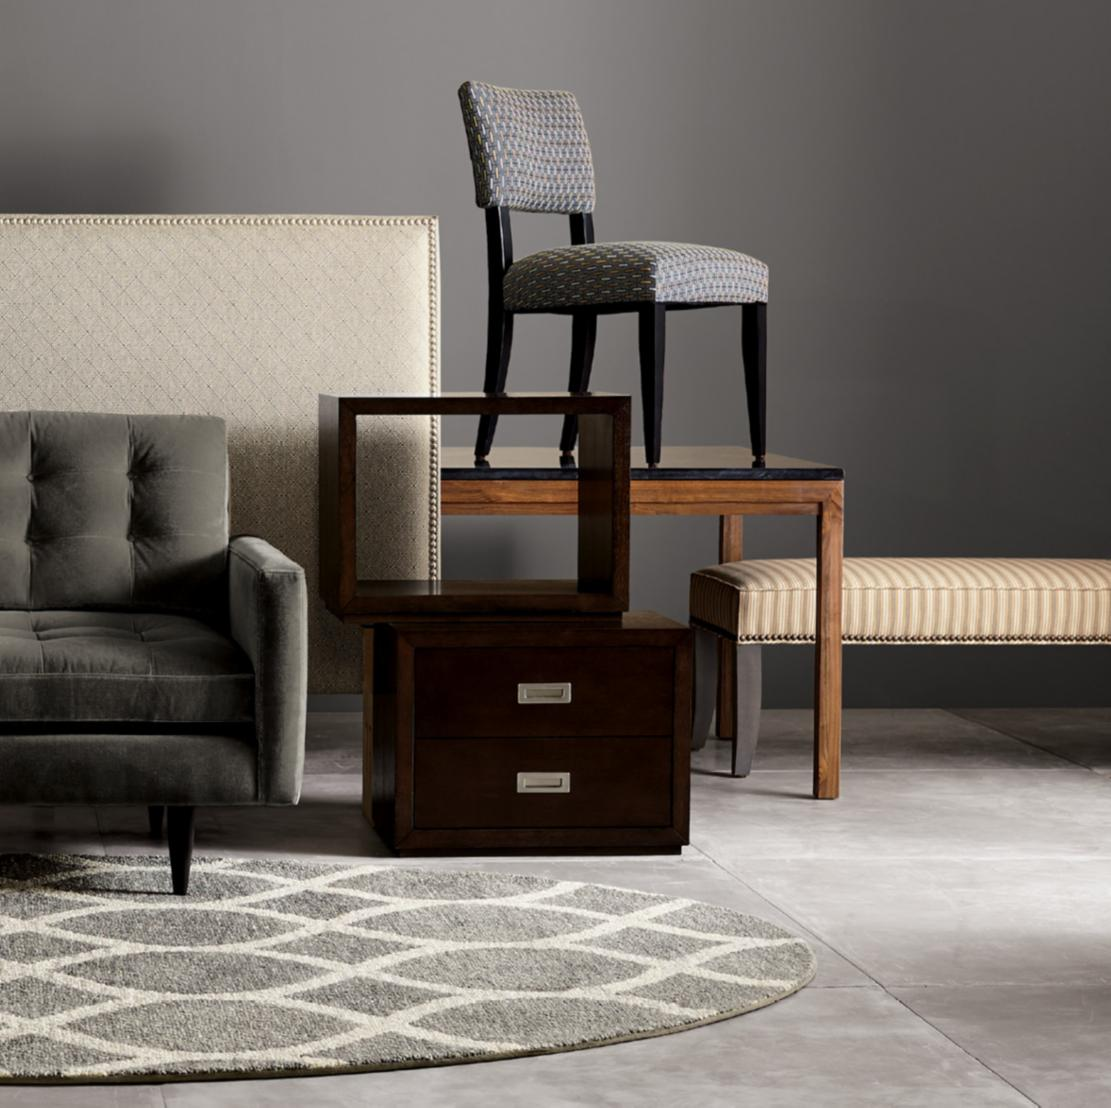 11 1 Create your own. Furniture For Your Contemporary Home   Crate and Barrel